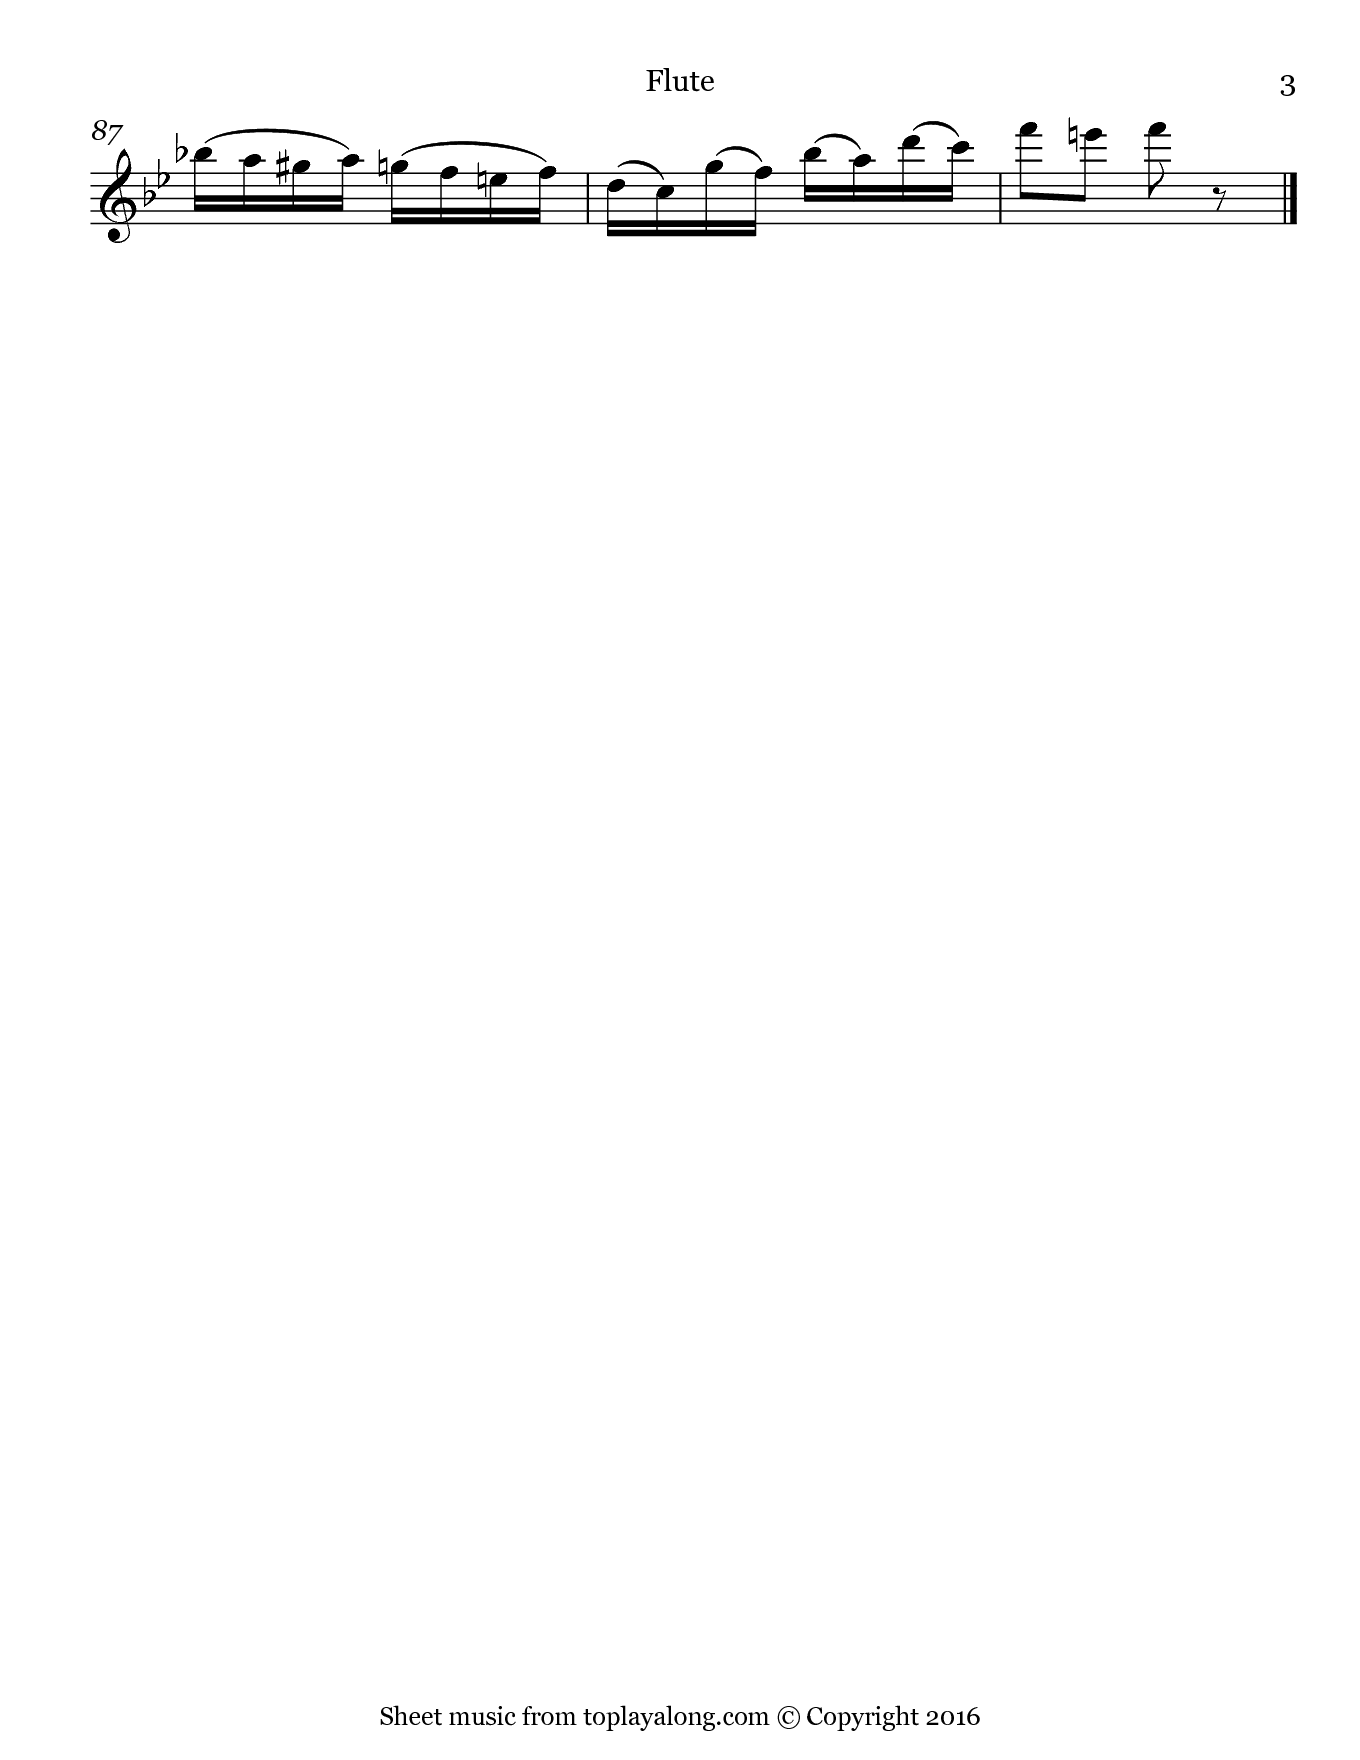 Miniature Overture from The Nutcraker by Tchaikovsky. Sheet music for Flute, page 3.